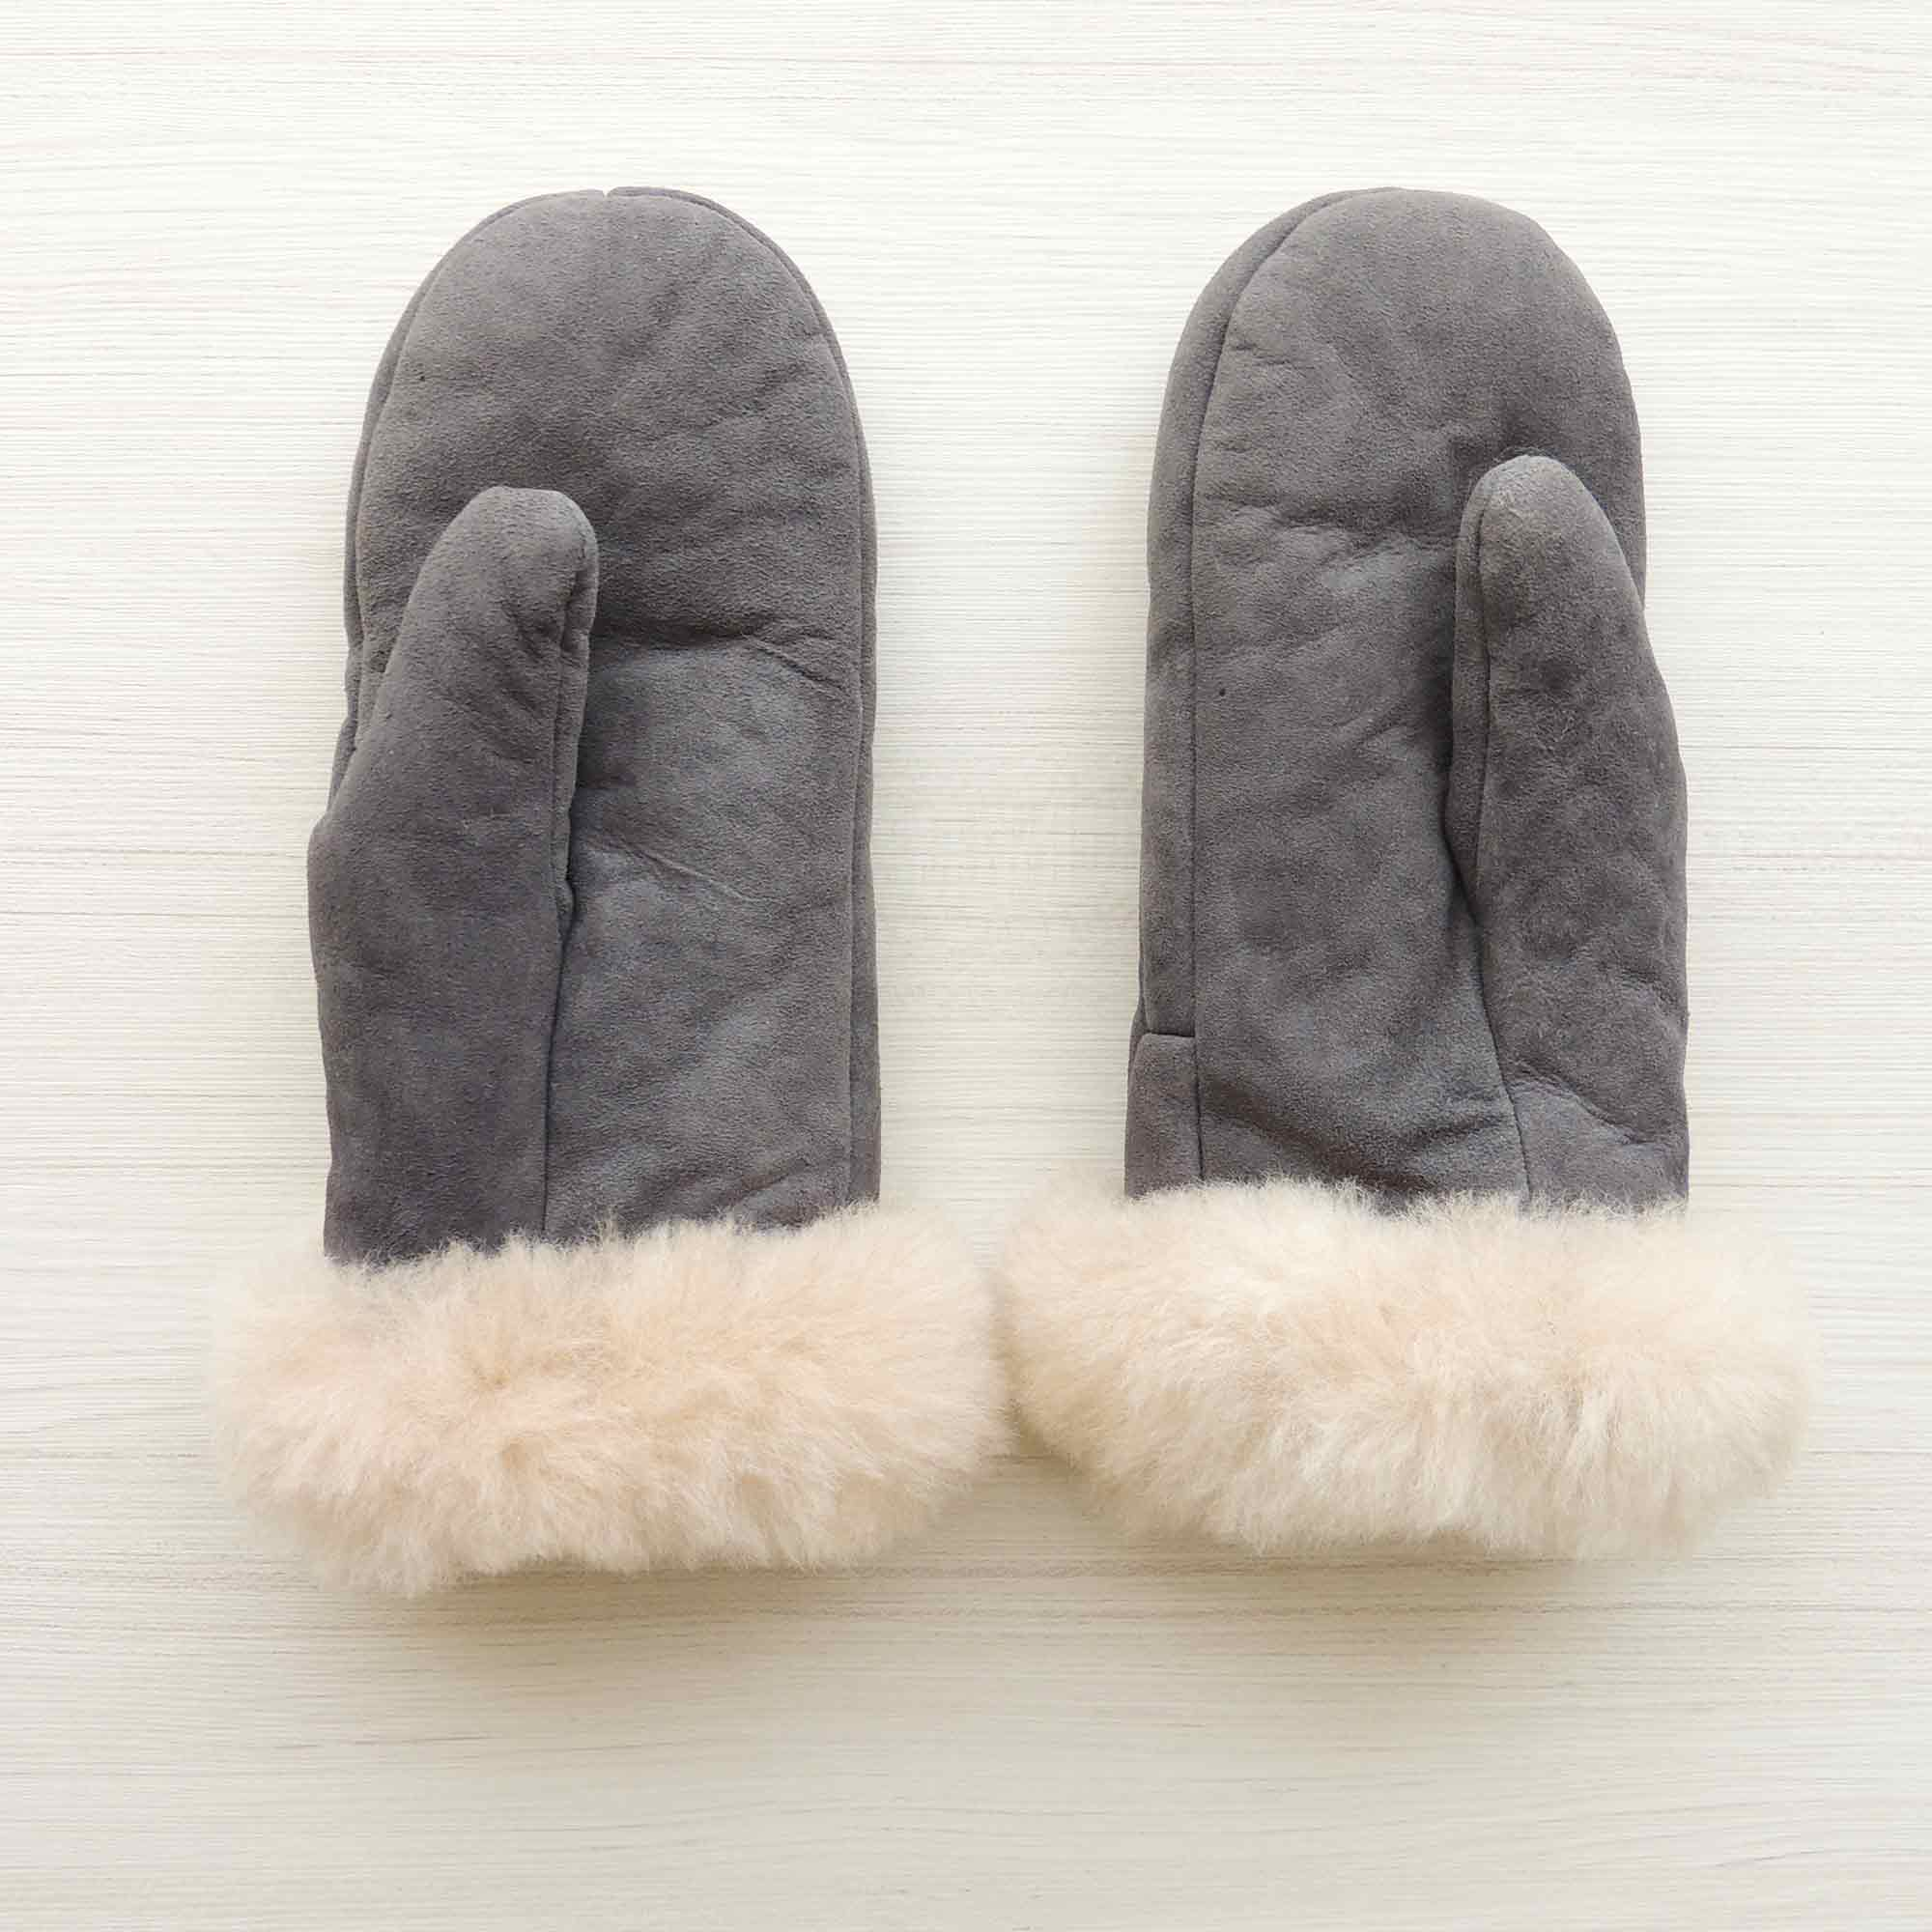 POPSFL wholesale Mittens handmade of 100% natural Sheepskin and fur with luxary 100% soft baby alpaca cuffs